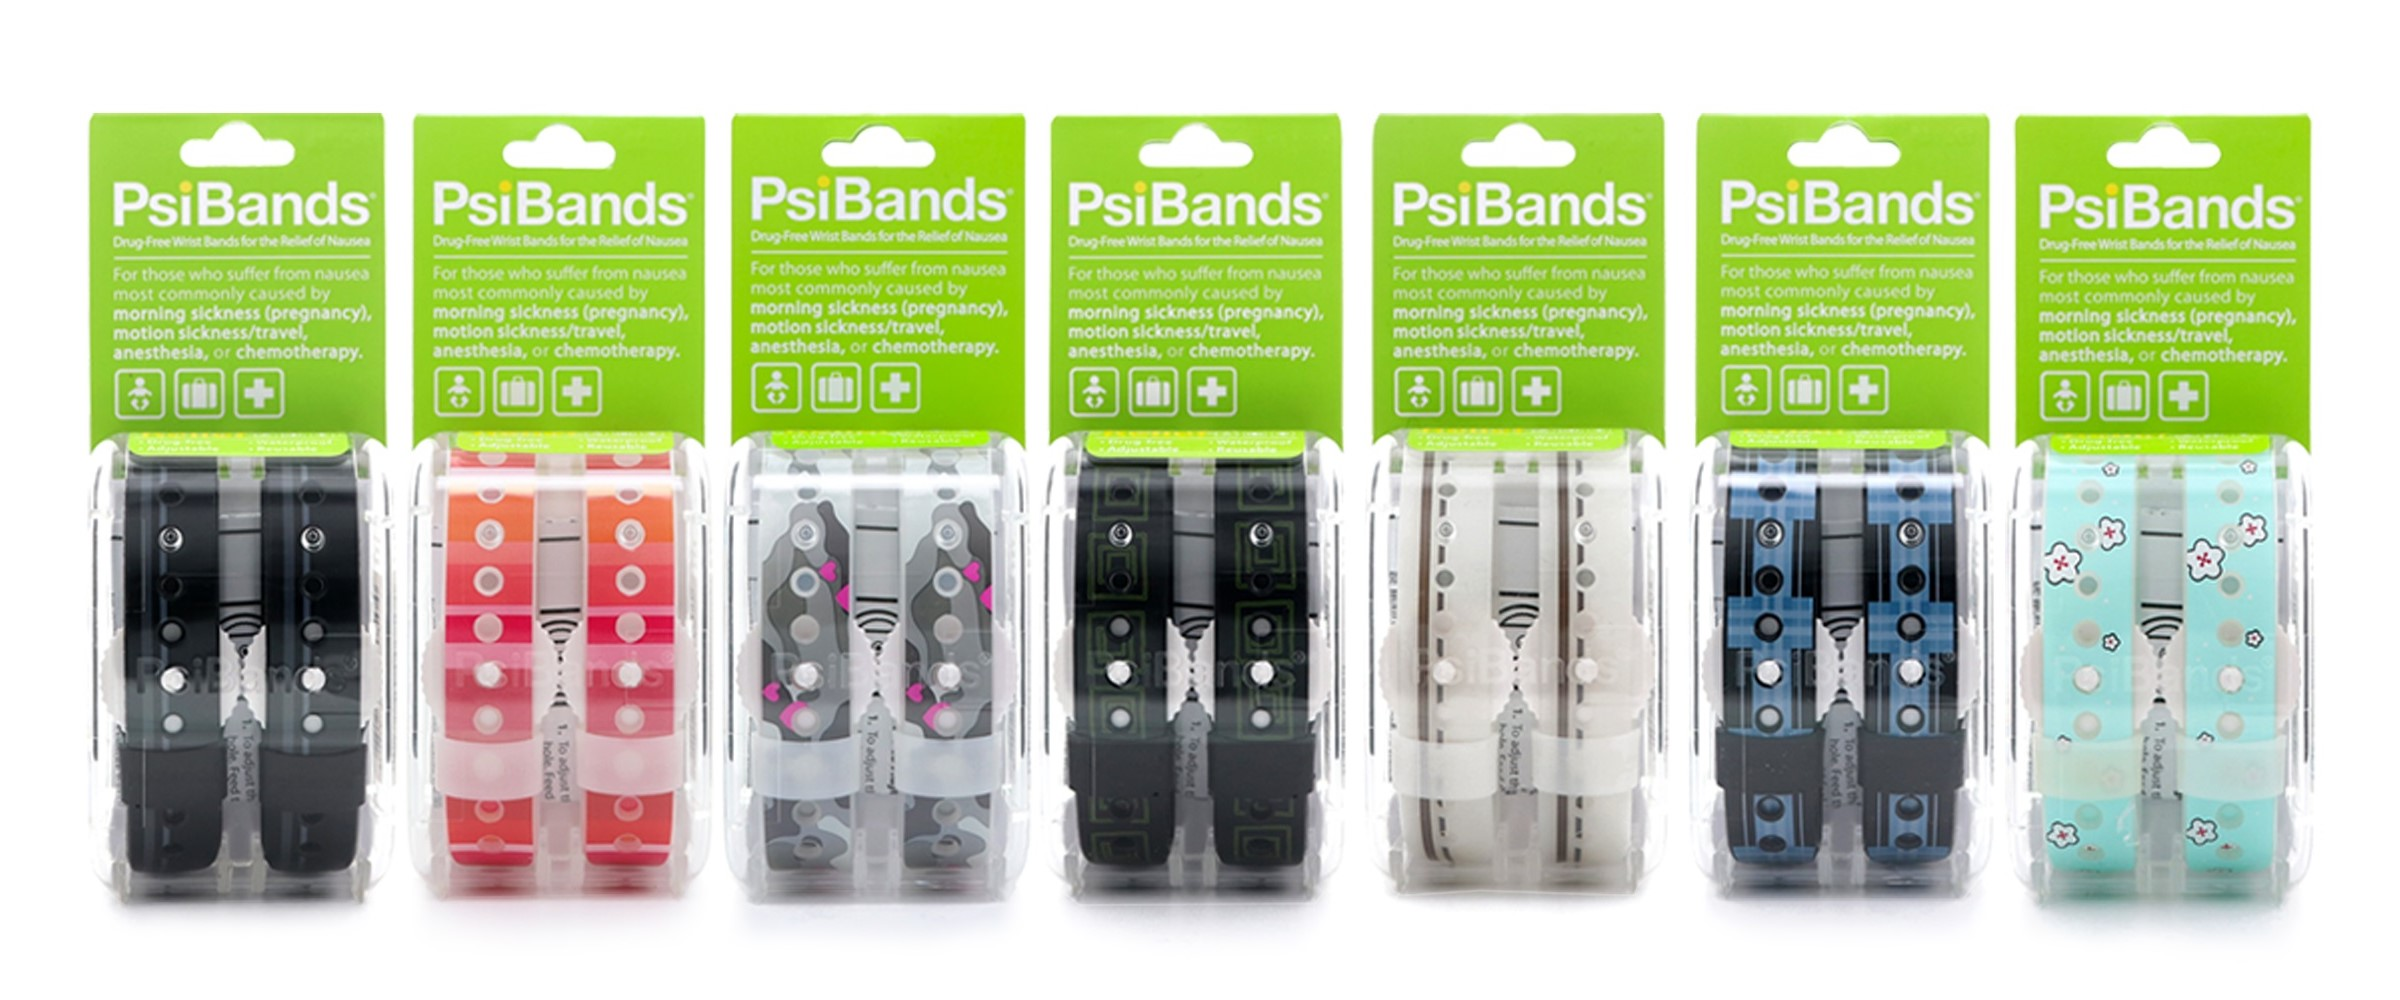 PsiBands Lined up in packaging